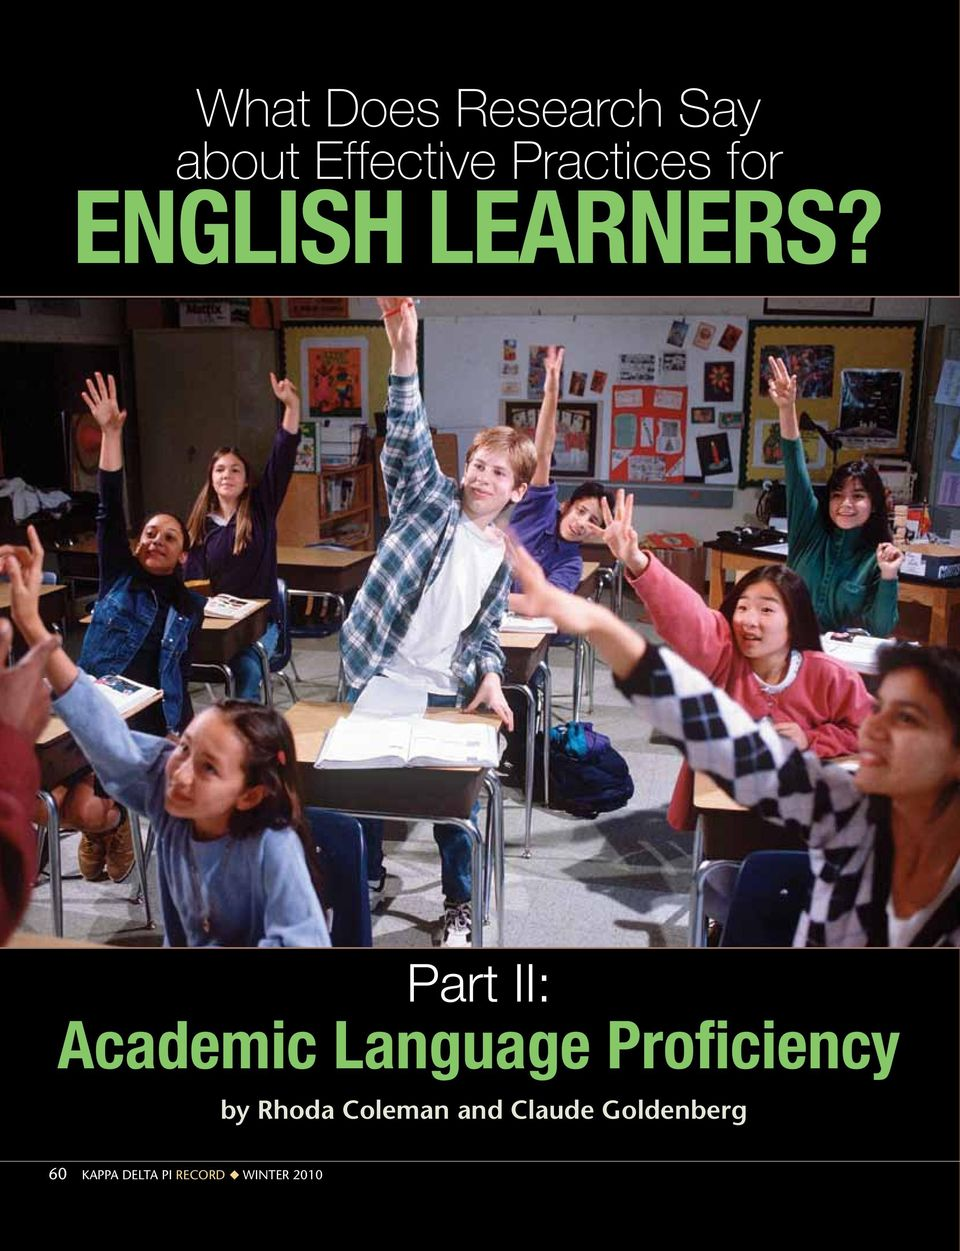 Part II: Academic Language Proficiency by Rhoda